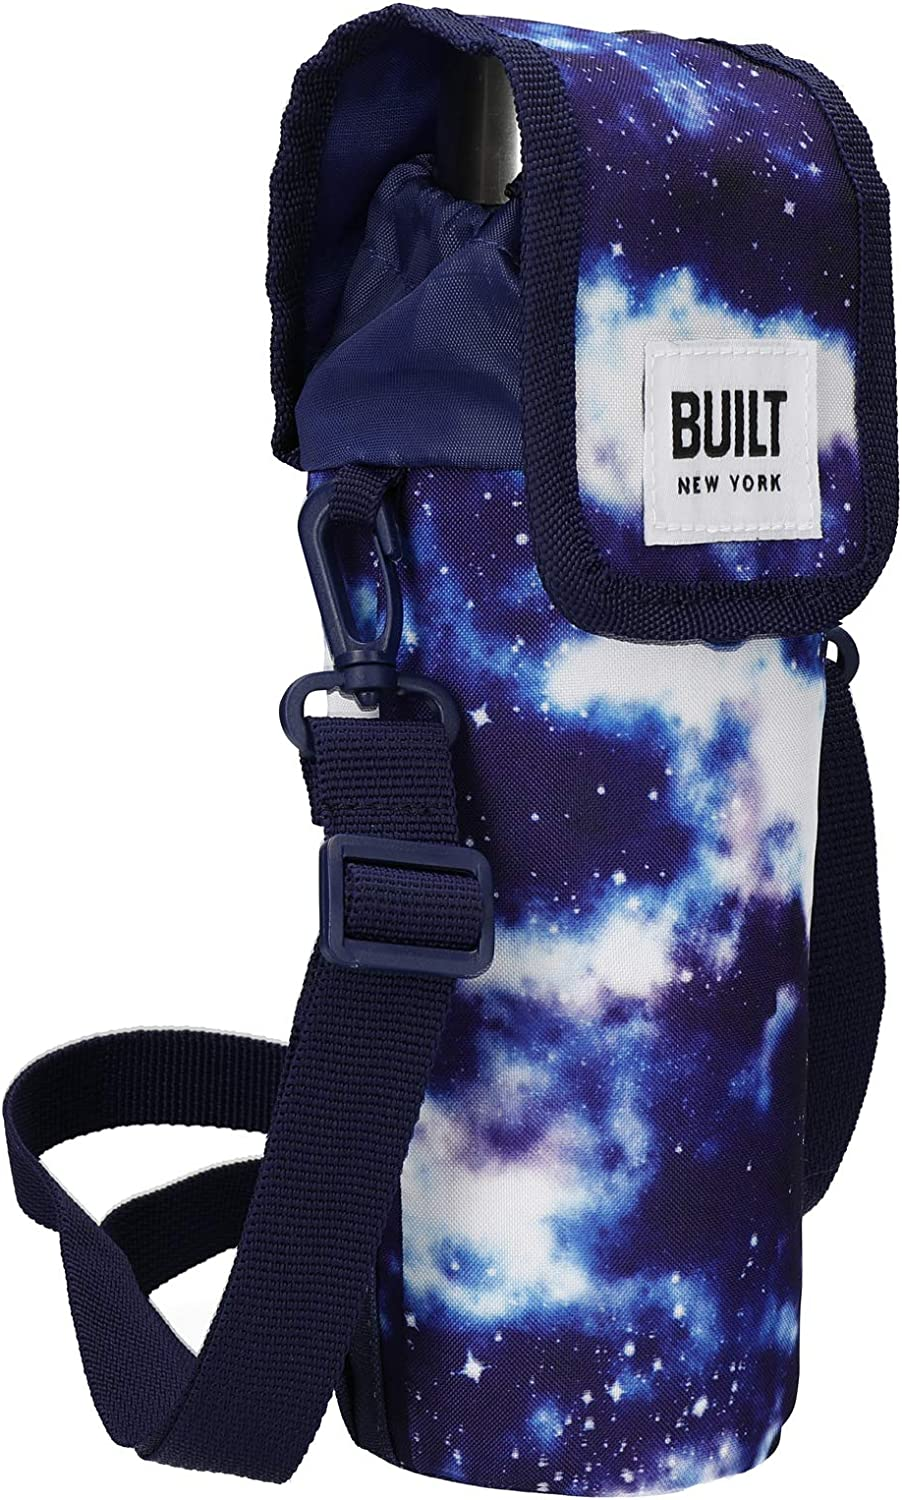 BUILT Insulated Bottle Bag with Shoulder Strap & 'Galaxy' Design, 100 percent Polyester with Food Safe PEVA Lining, Multi Colour, 9 x 11 x 25cm